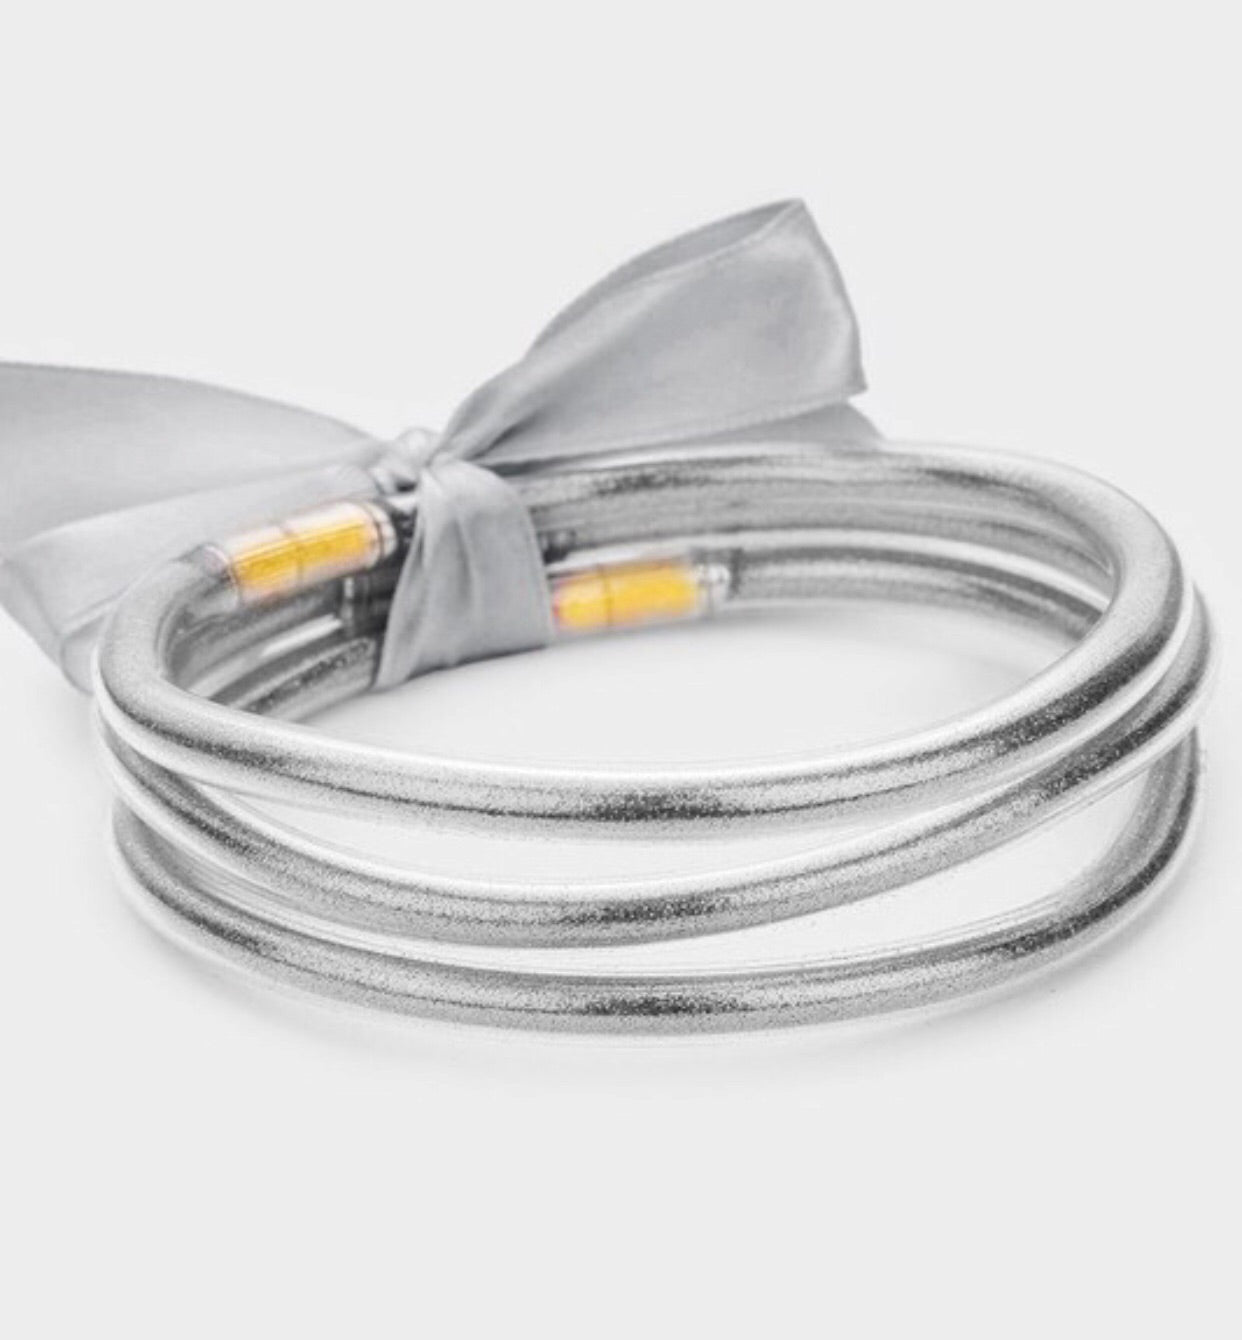 Flexible Silver Bangles- Set of 3